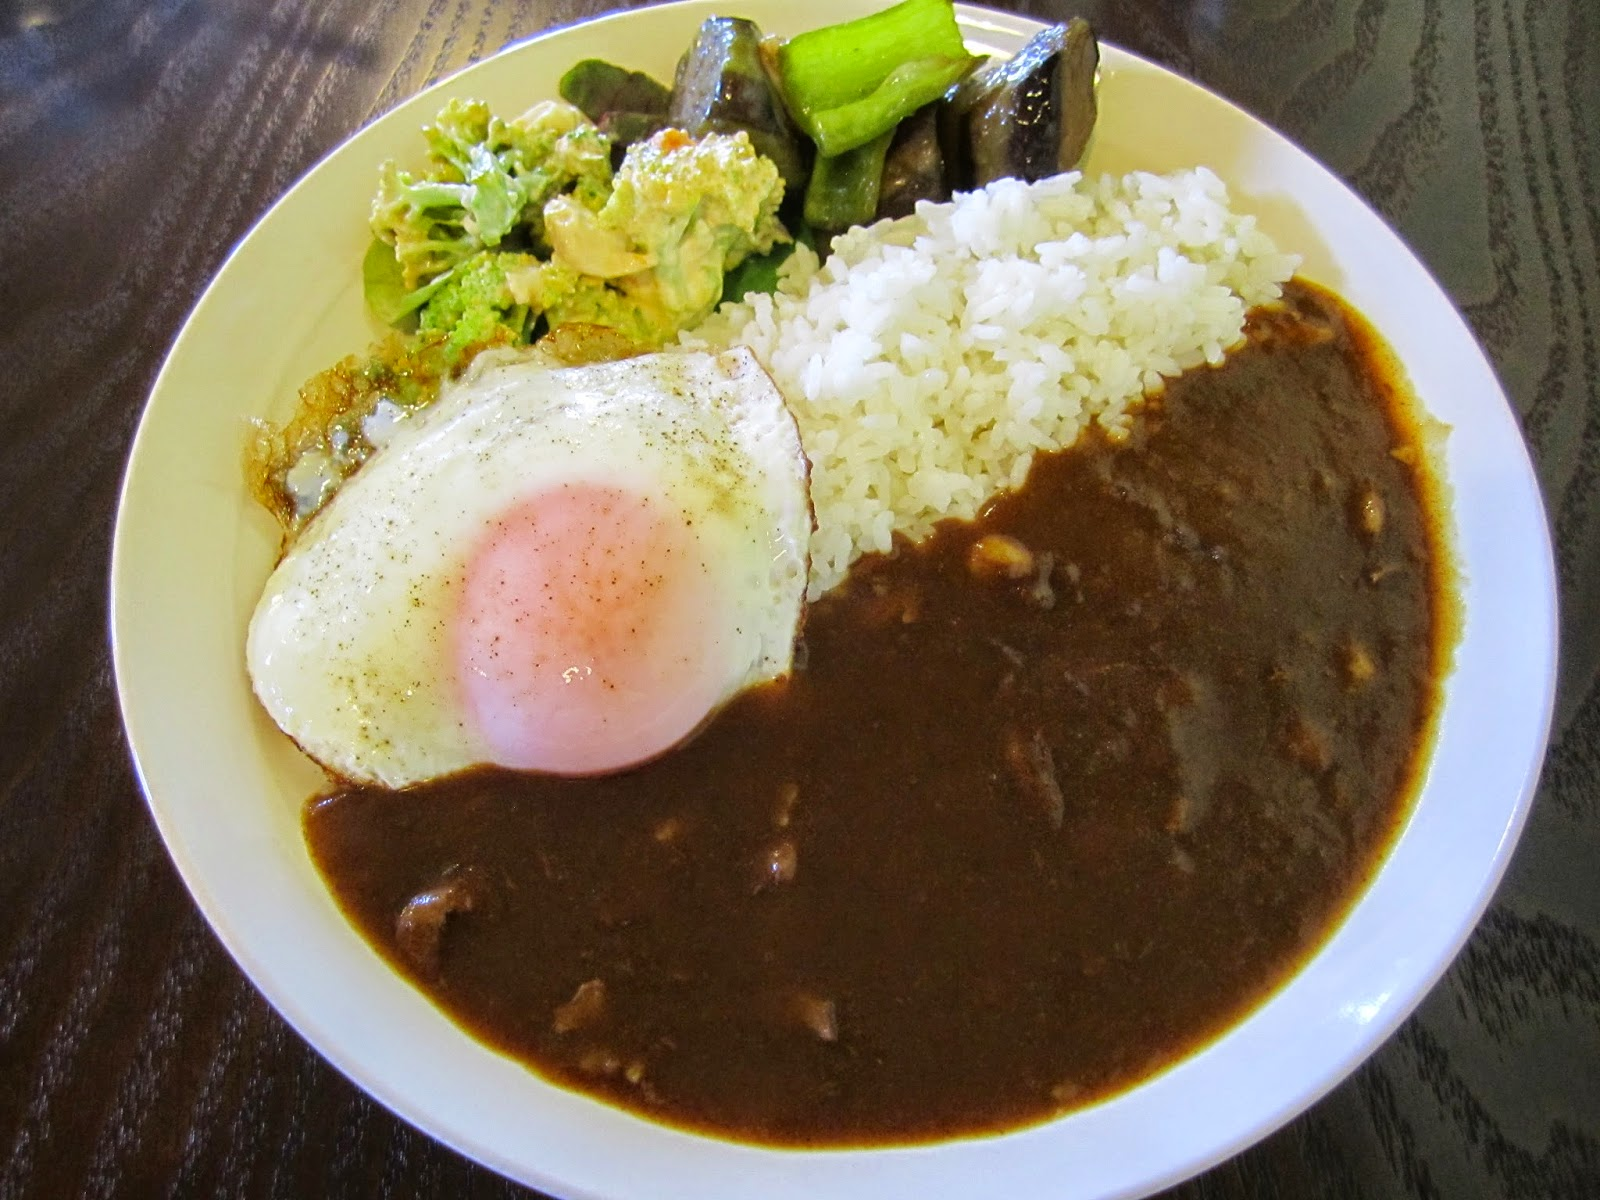 Beef Tendon Curry Gyu Suji Curry Towada Bunny Rabbit Cafe Usa Cafe Lovelies 牛すじカレー 十和田うさぎカフェ うさカフェラヴリーズ